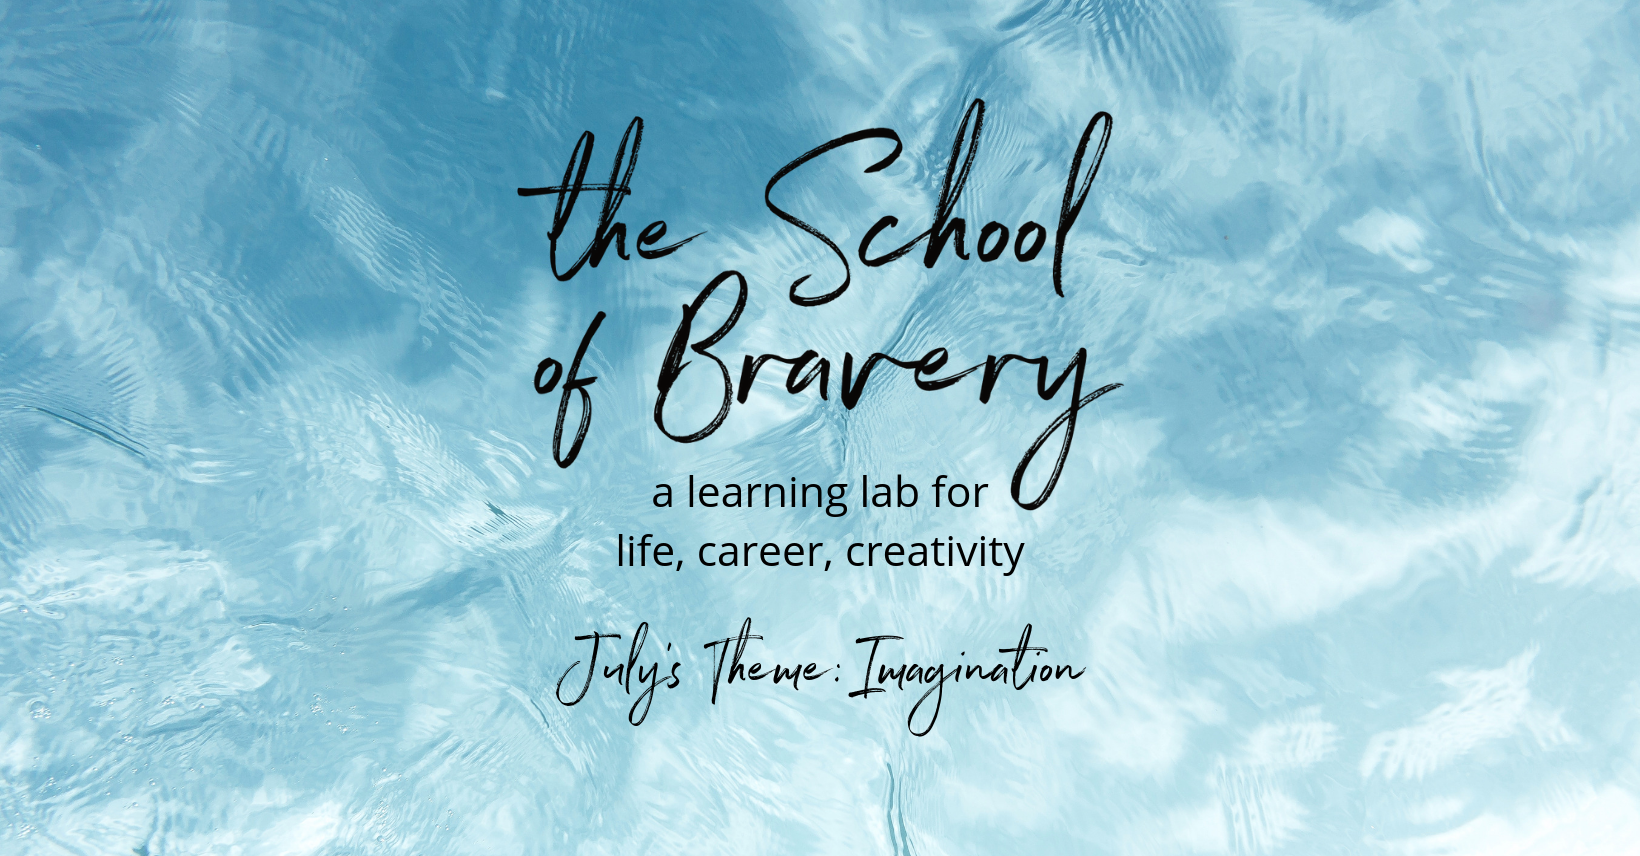 7 - July - FB Cover Image - The School of Bravery